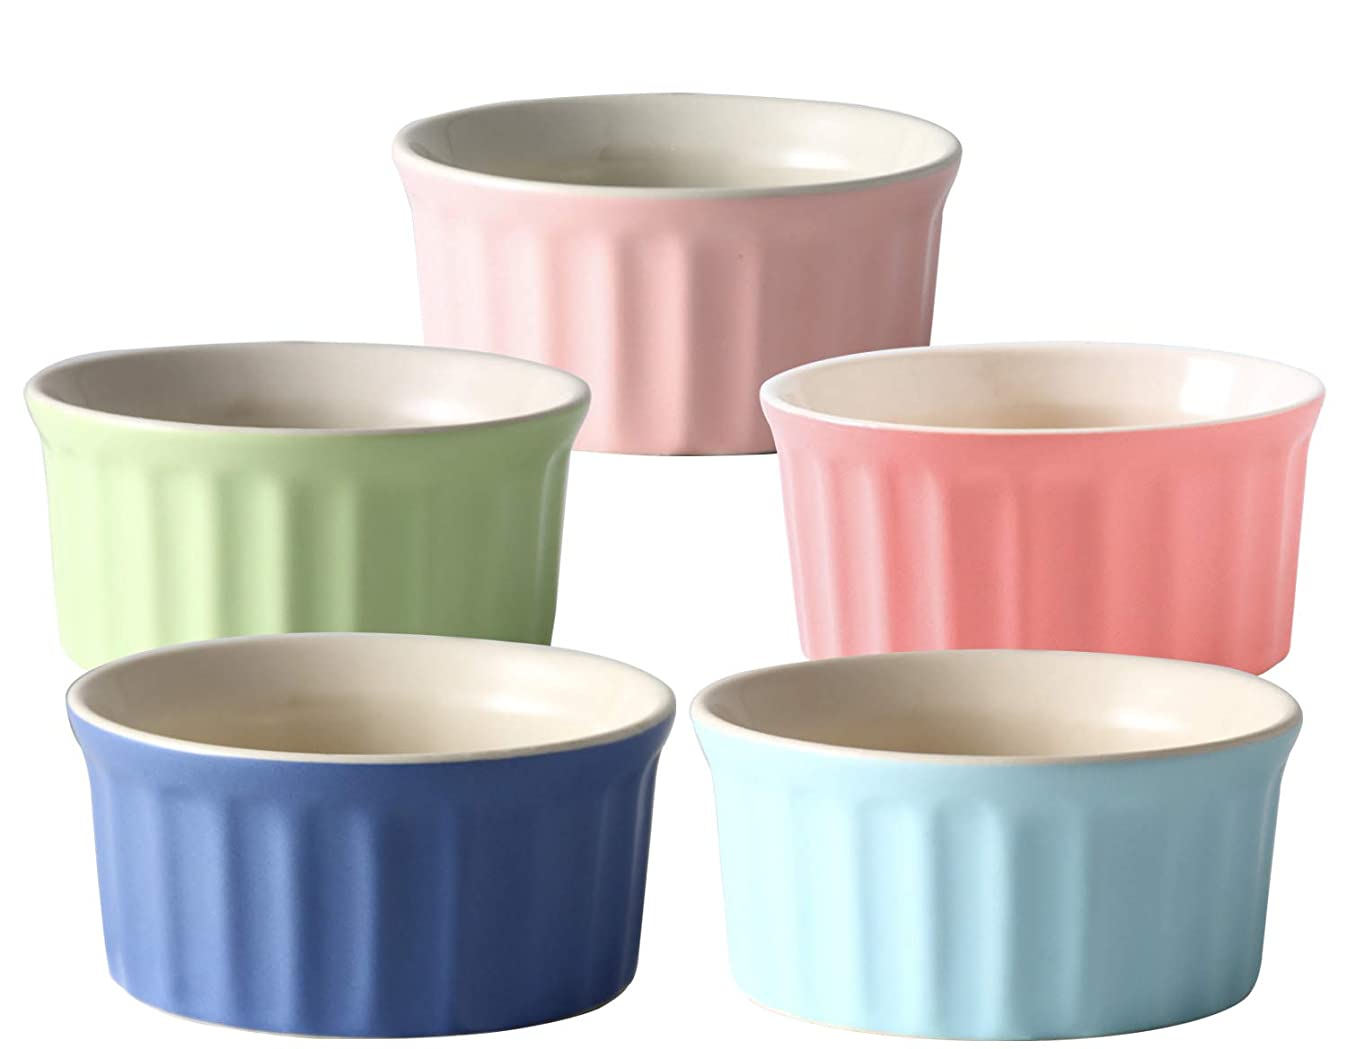 6 Ounce Porcelain Souffle Dishes | Oven Save Ramekins for Baking | Porcelain Baking Dish For Soufflé, Creme Brulee and Ice Cream | Set of 5 Souffle Cups